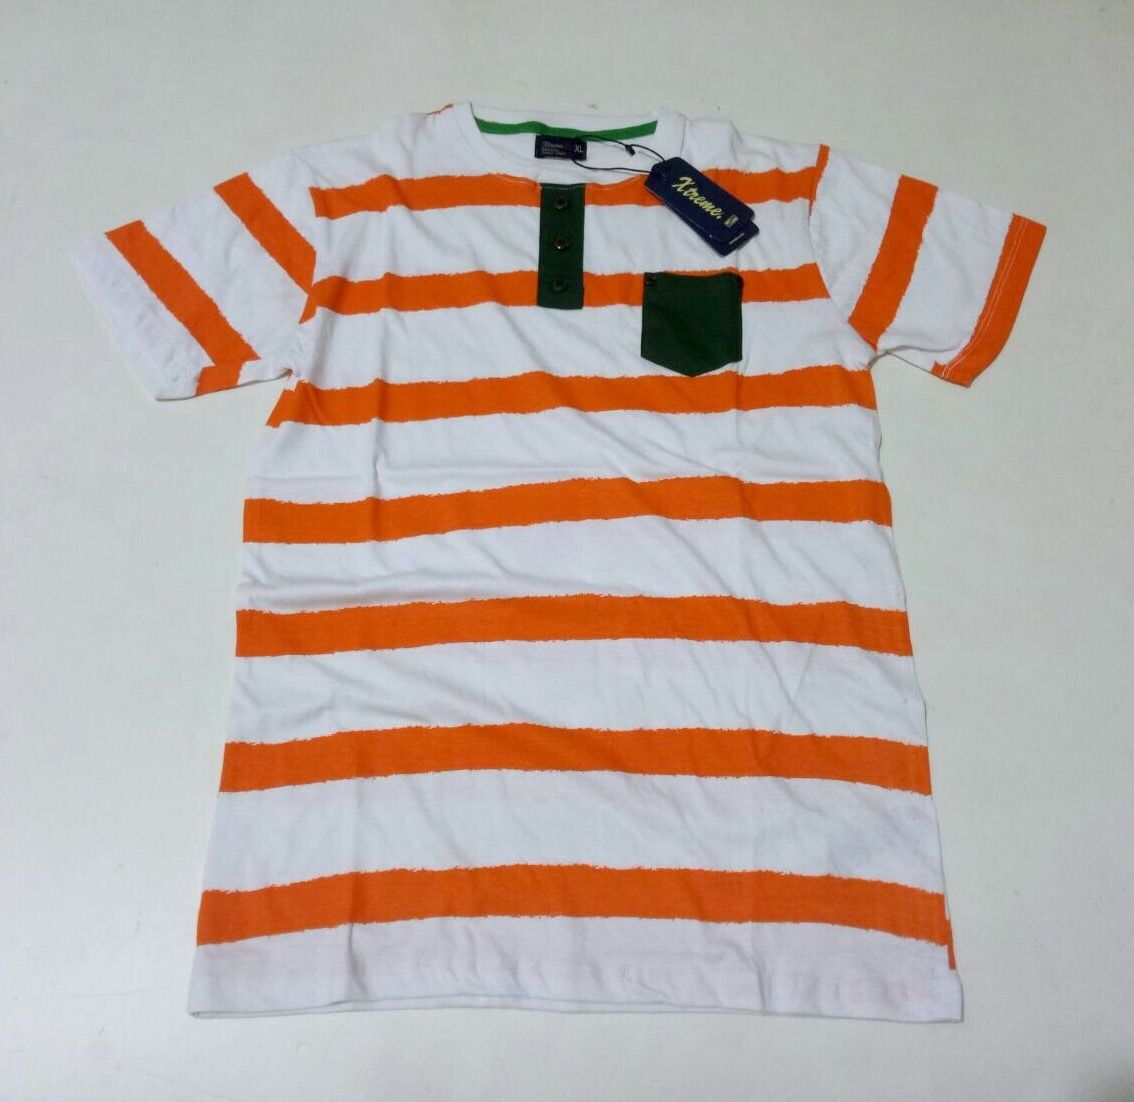 1cee1822 Branded short sleeve cotton t shirts from MinMax Textile. Offer t-shirts  direct from